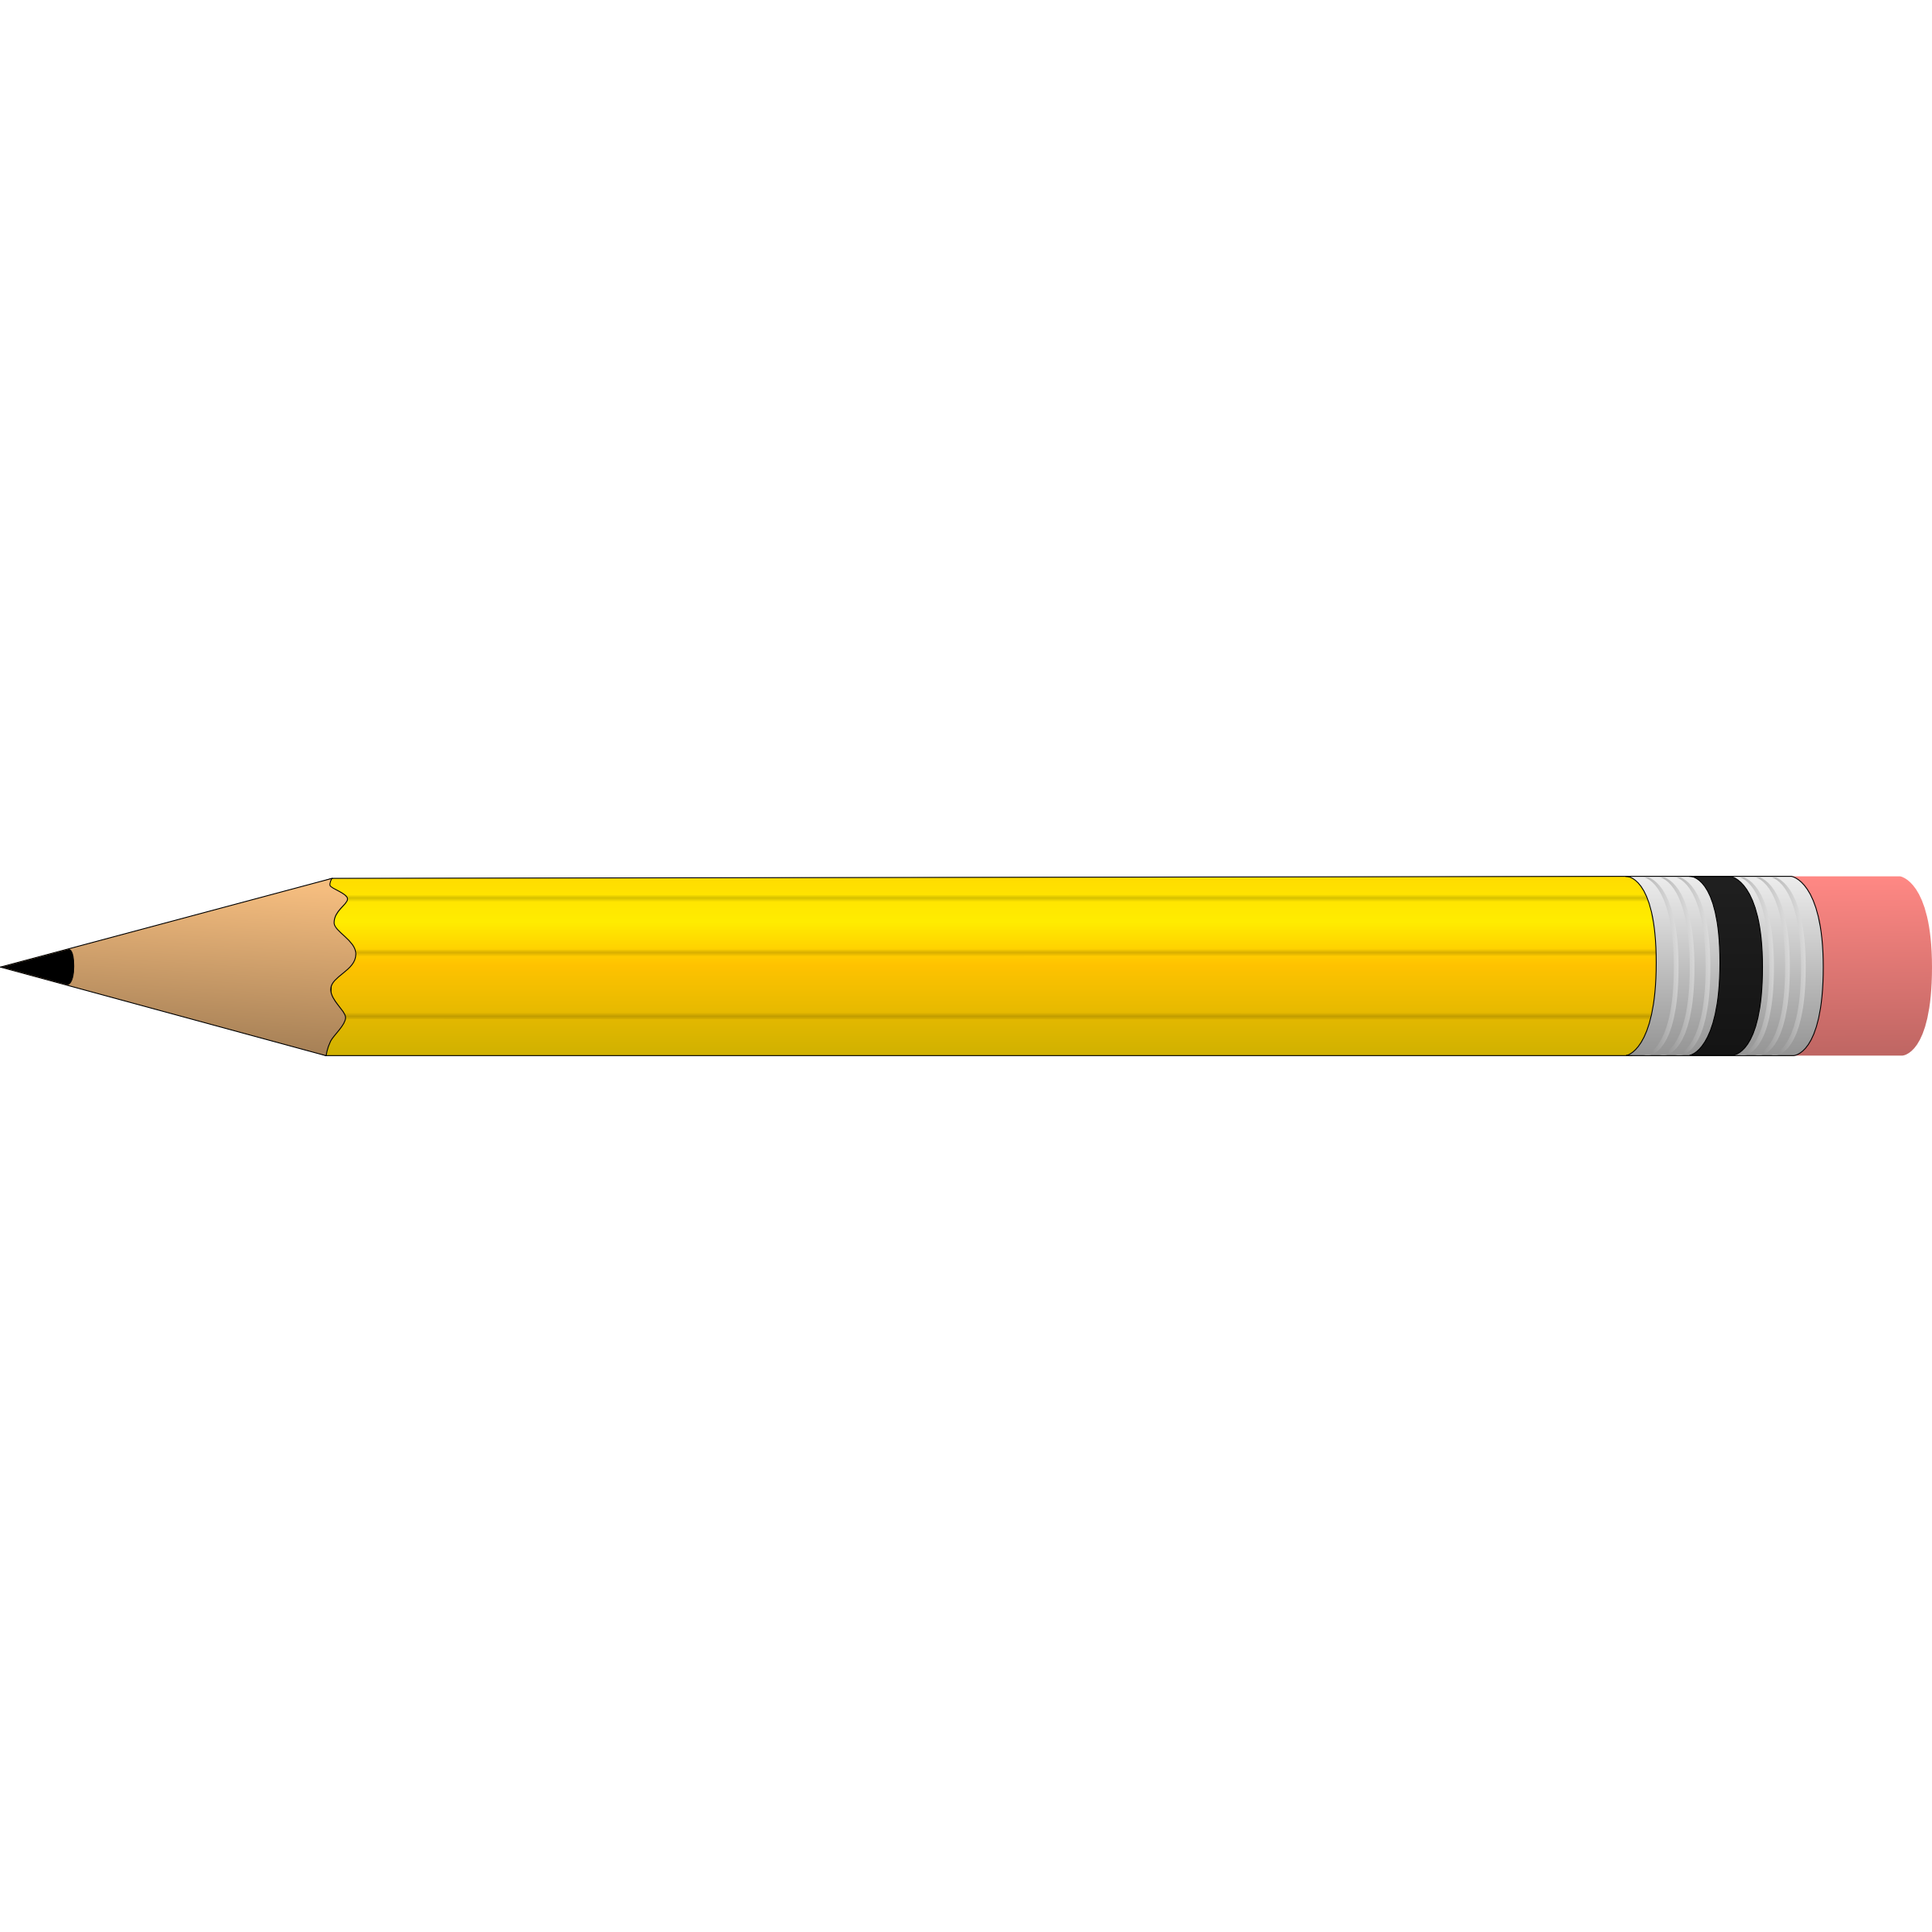 Crayons clipart horizontal.  collection of pencil